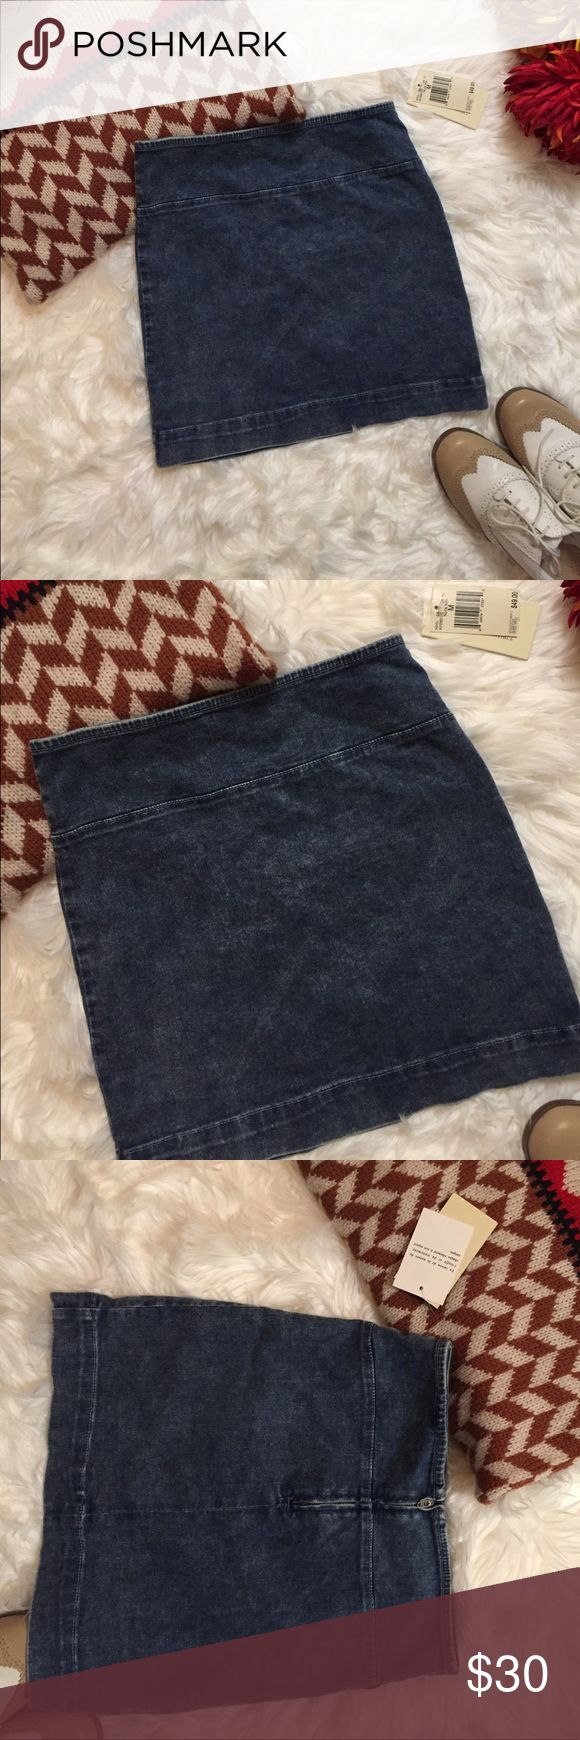 NWT Guess Radical Wash Stretch Denim Skirt M This stretch Denim skirt from Guess is perfect all year round! Just throw on some tights and a sweater and you've got the perfect fall look. It is Radical wash and has a zip up back. New with tags. Guess Skirts